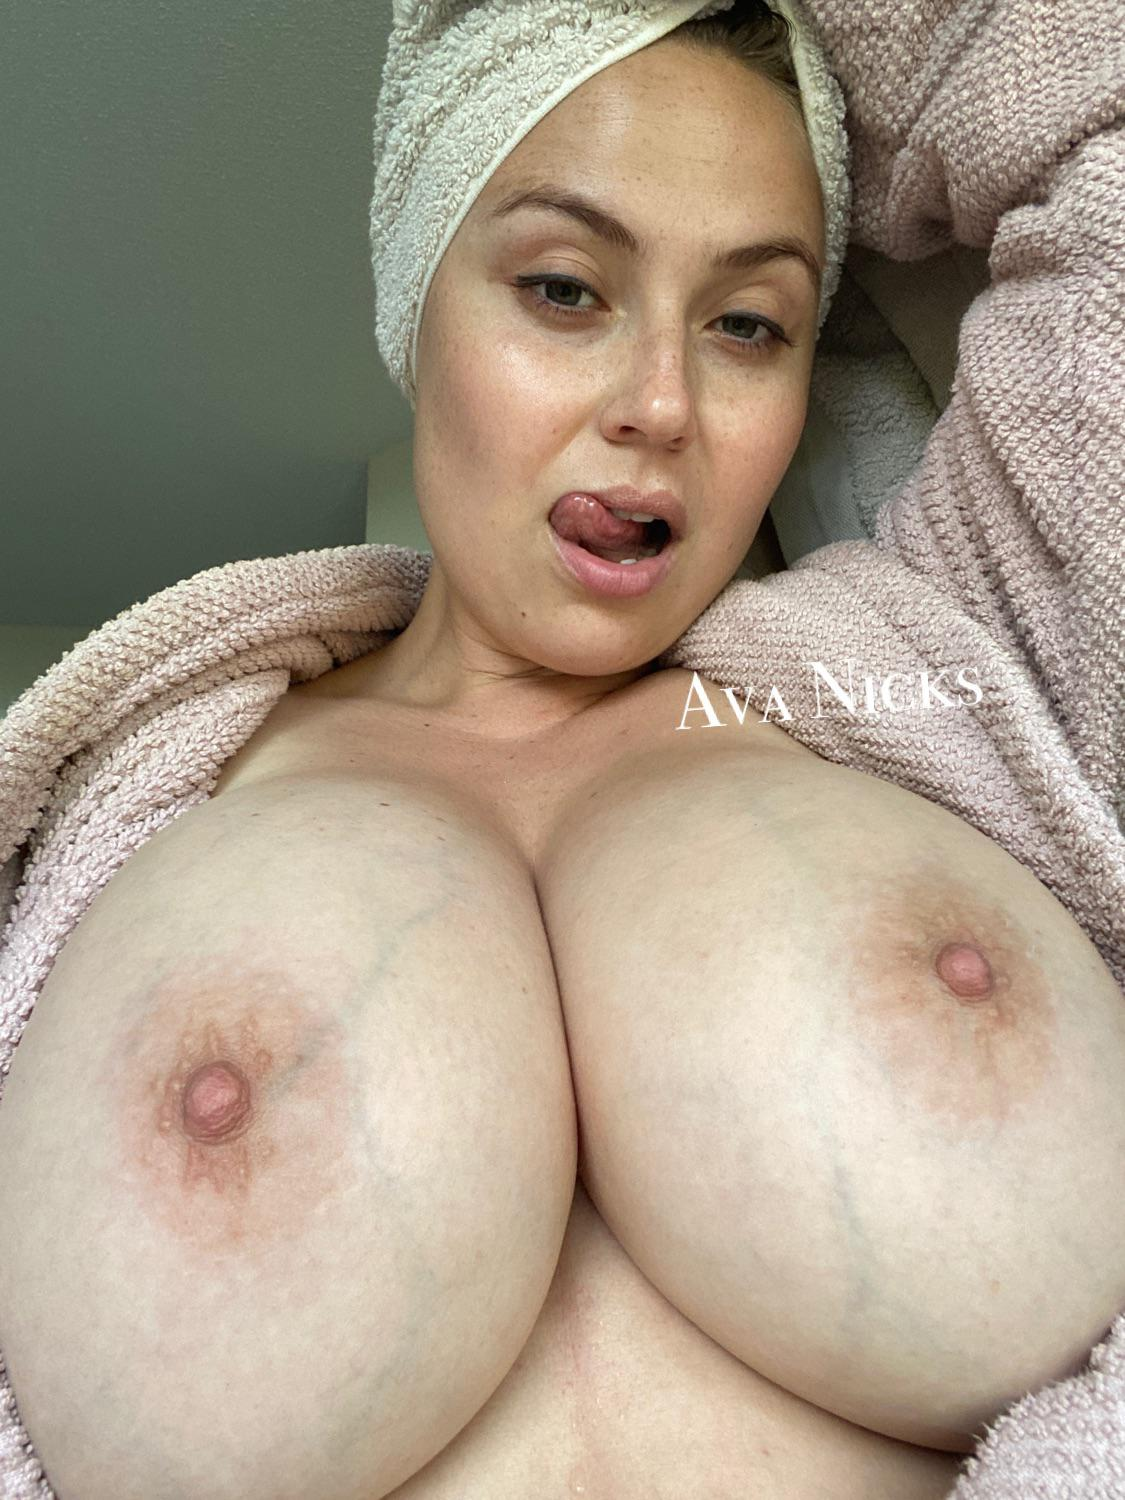 Will You Help Me Cure My Insatiable Appetite For Dick Today?